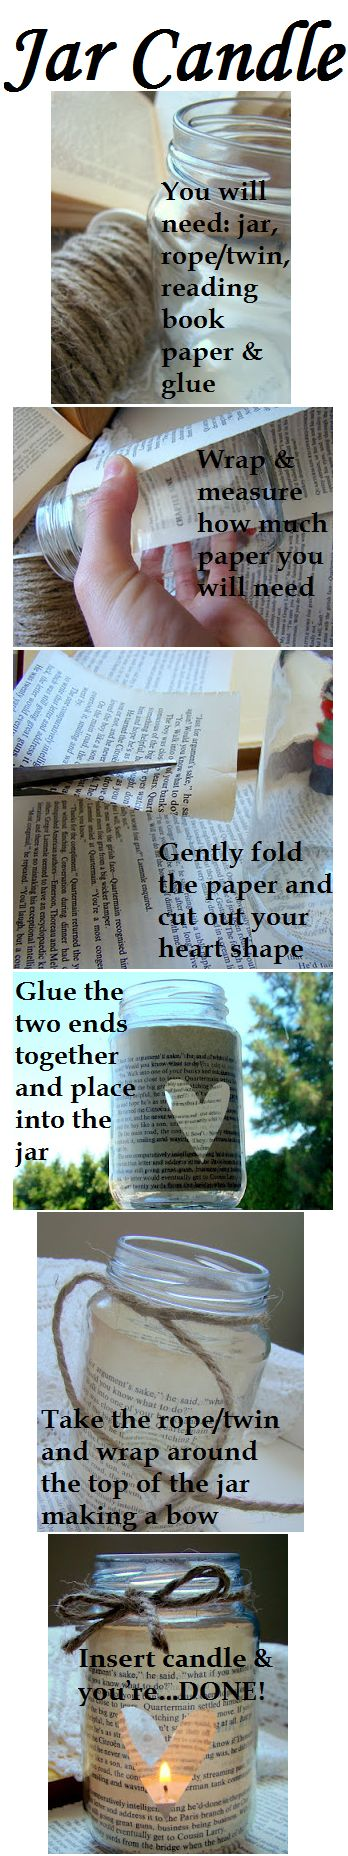 DIY Jar Candle! Super easy and cheap :) http://ilovethisandthat.blogspot.com/2012/01/candle-in-bottle.html